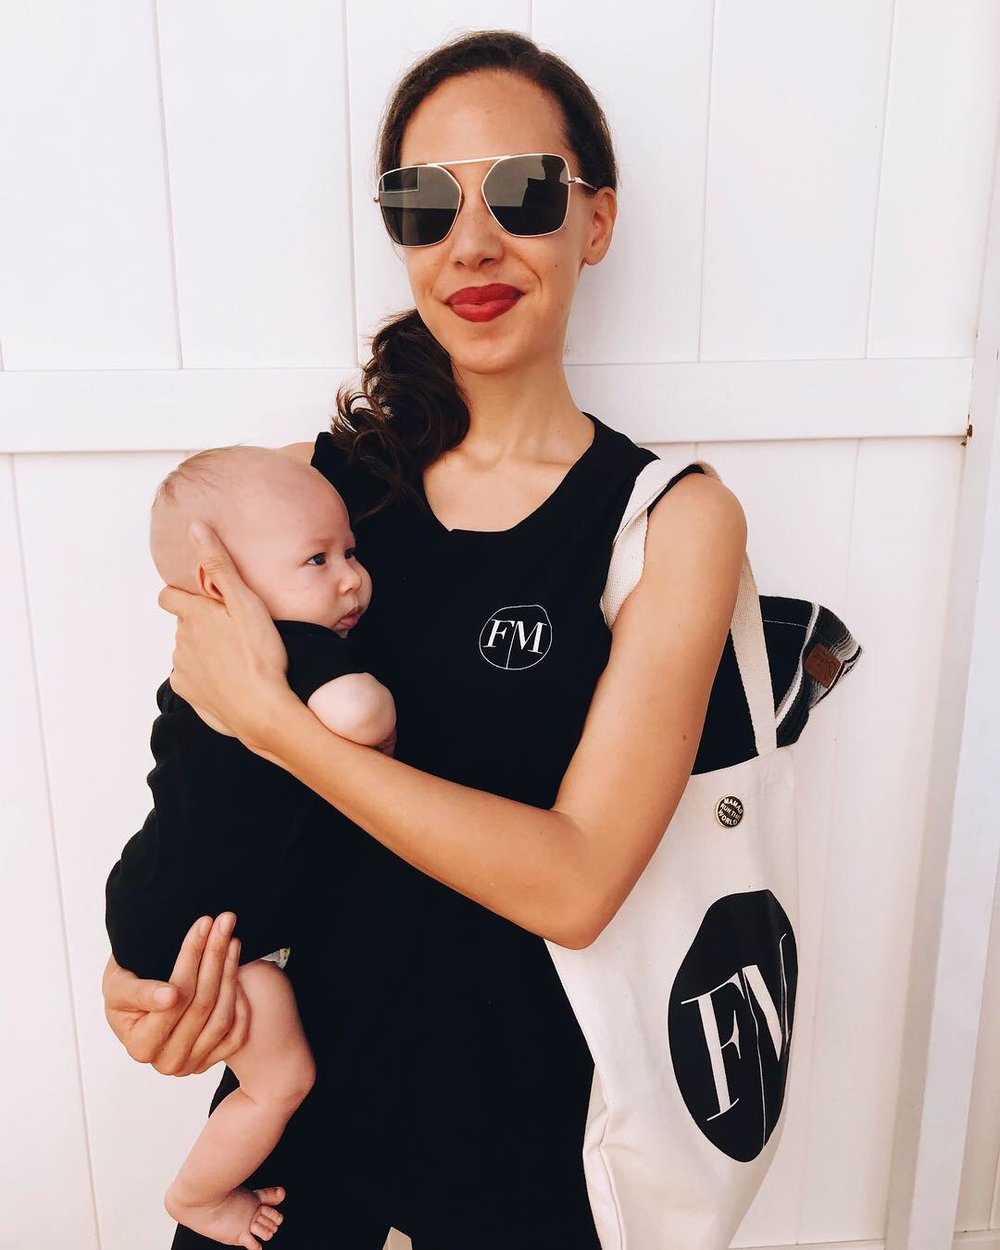 Woman wearing a black tank top with Fashion Mamas logo, black sunglasses and white bag with FM logo carrying a baby in a black cloth carrier